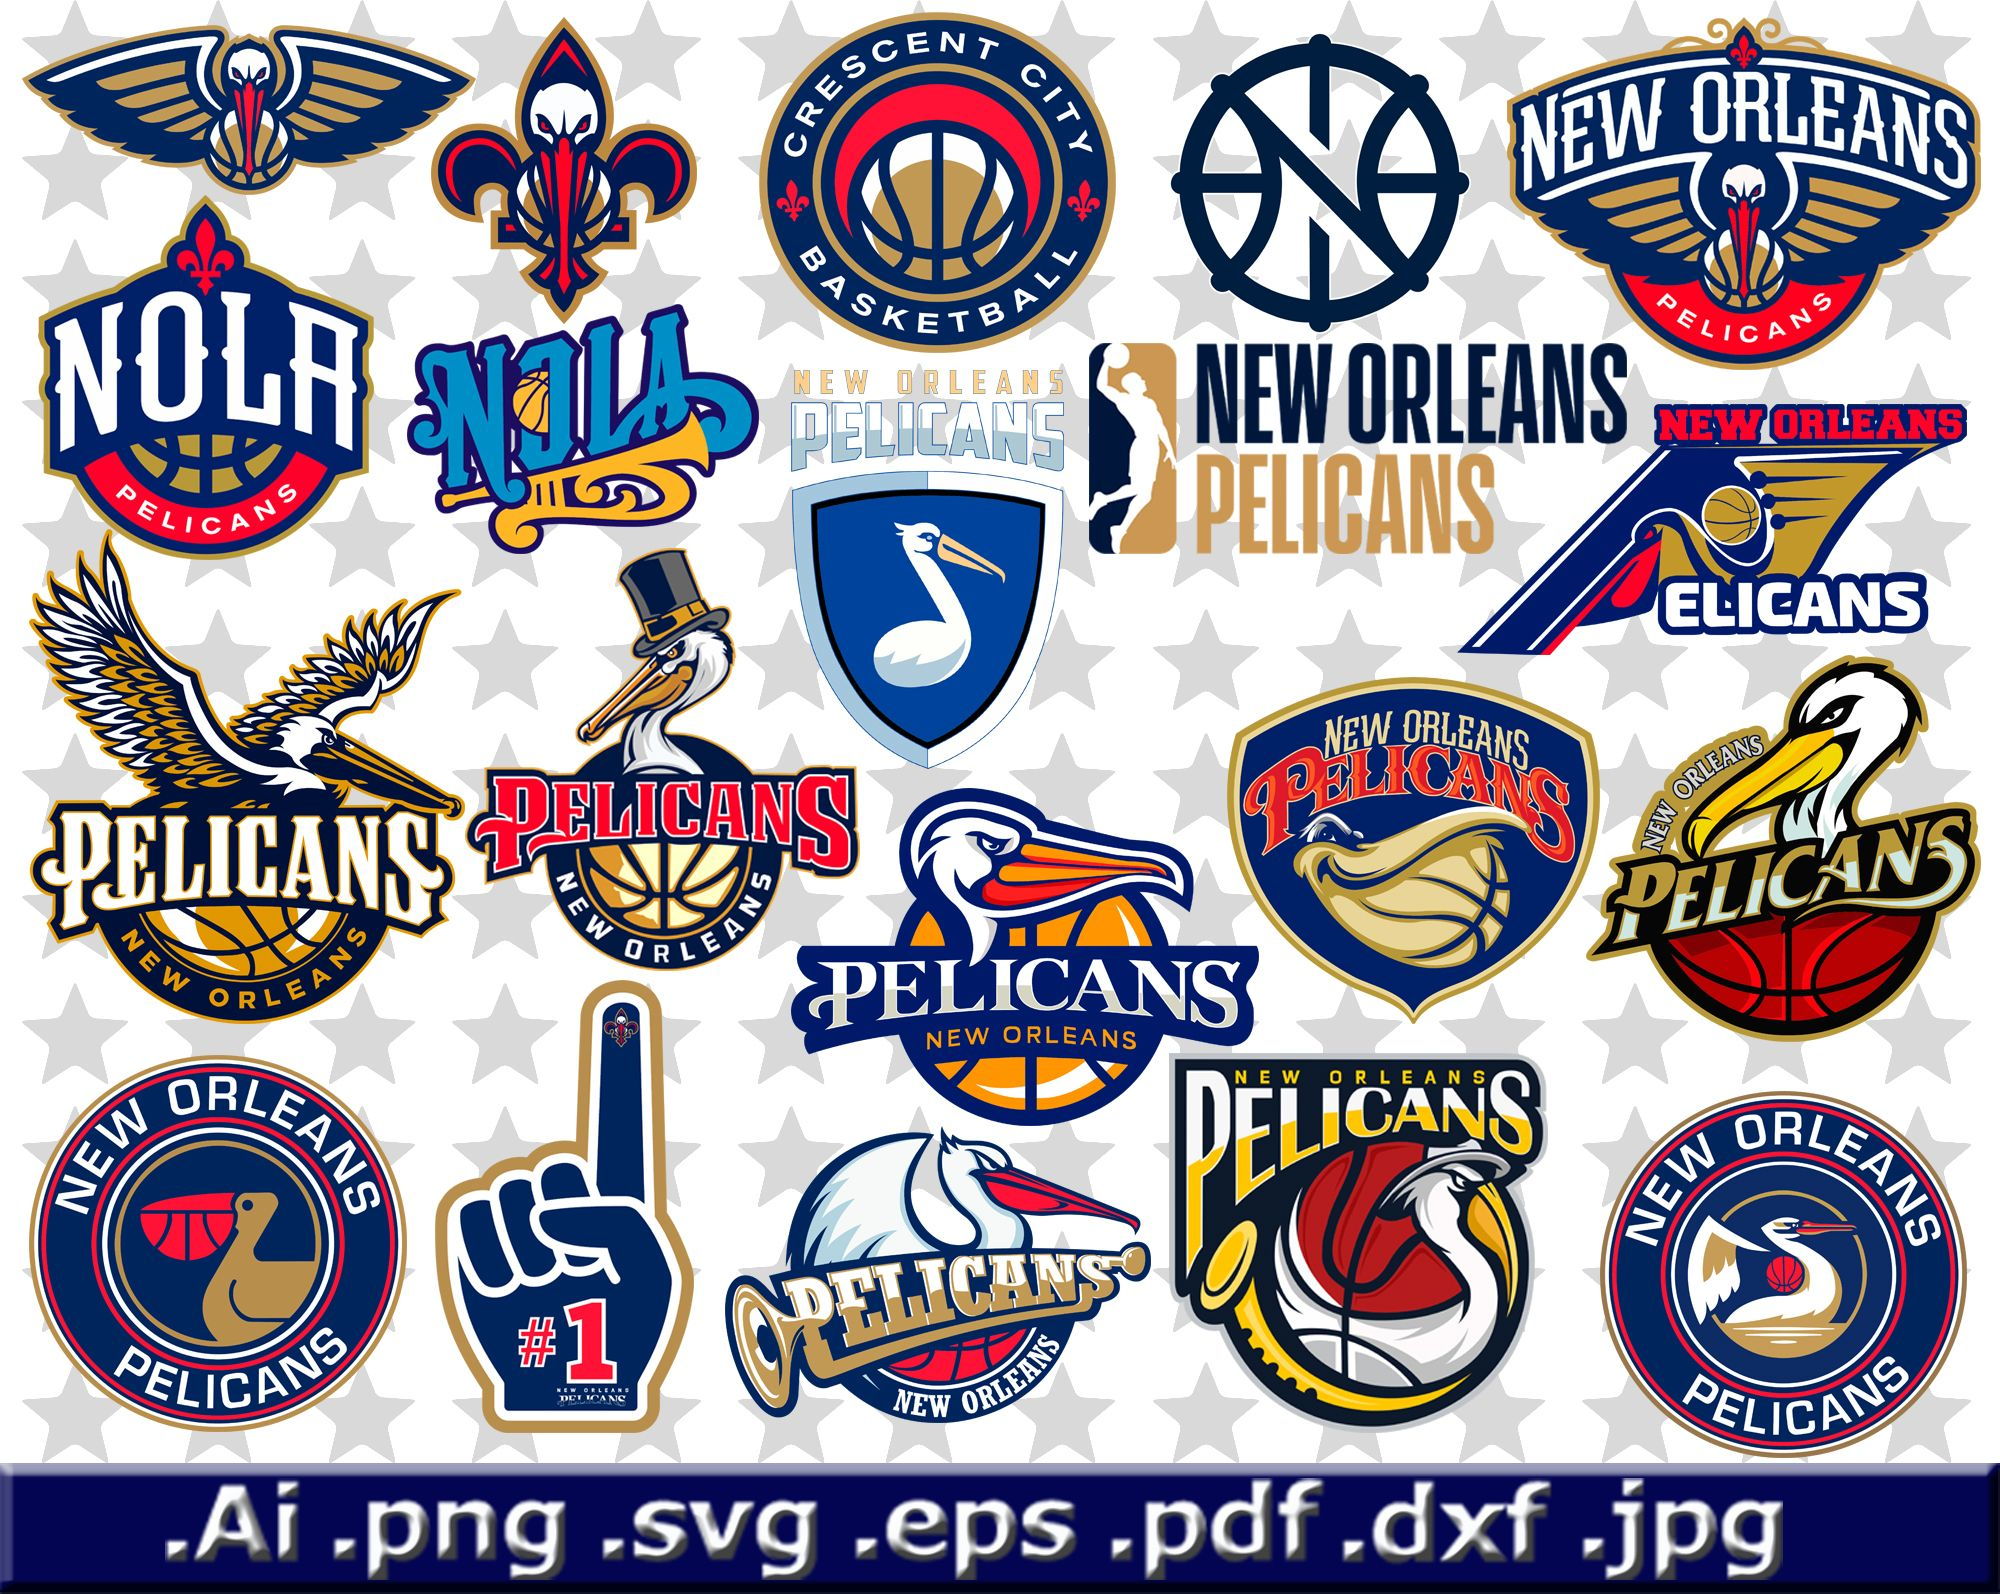 Starsclipart New Orleans Pelicans New Orleans Pelicans Logo New Orleans Pelicans Svg New Orleans Pelicans Clipart Nba Logo Chicago Bulls Boston Celtics Logo Chicago Bulls Logo